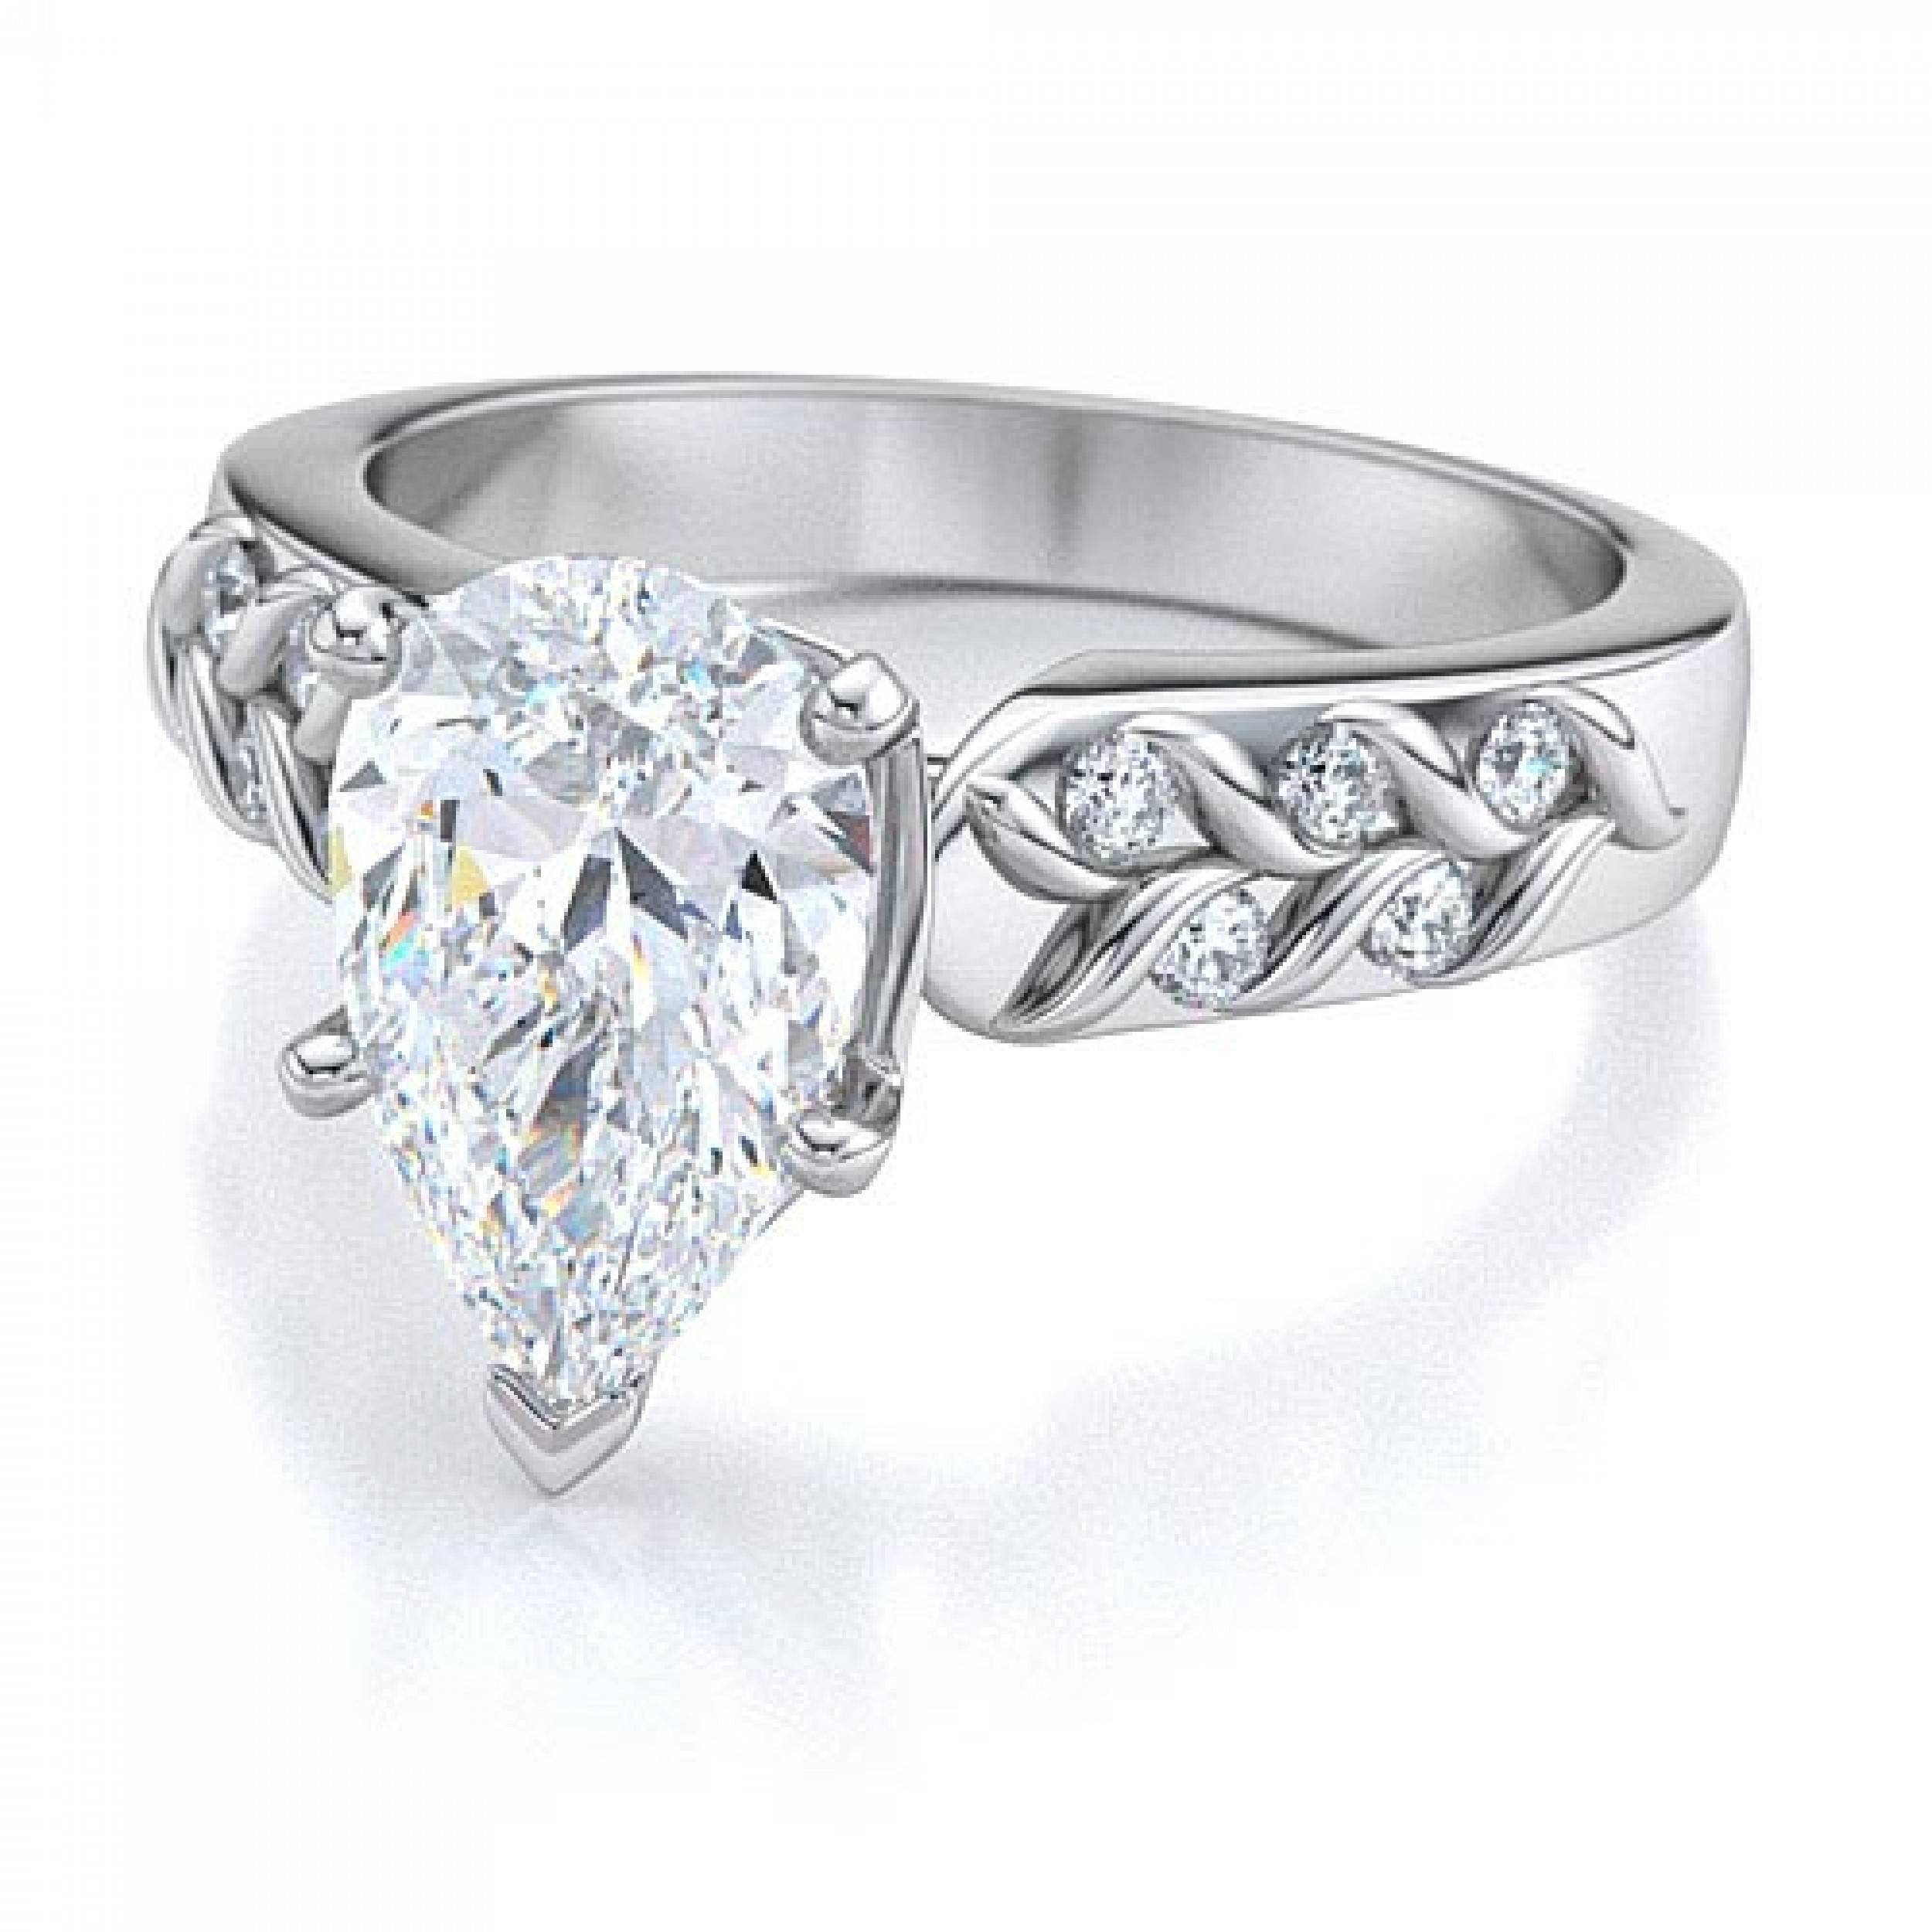 Featured Photo of Pear Shaped Diamond Engagement Ring Settings